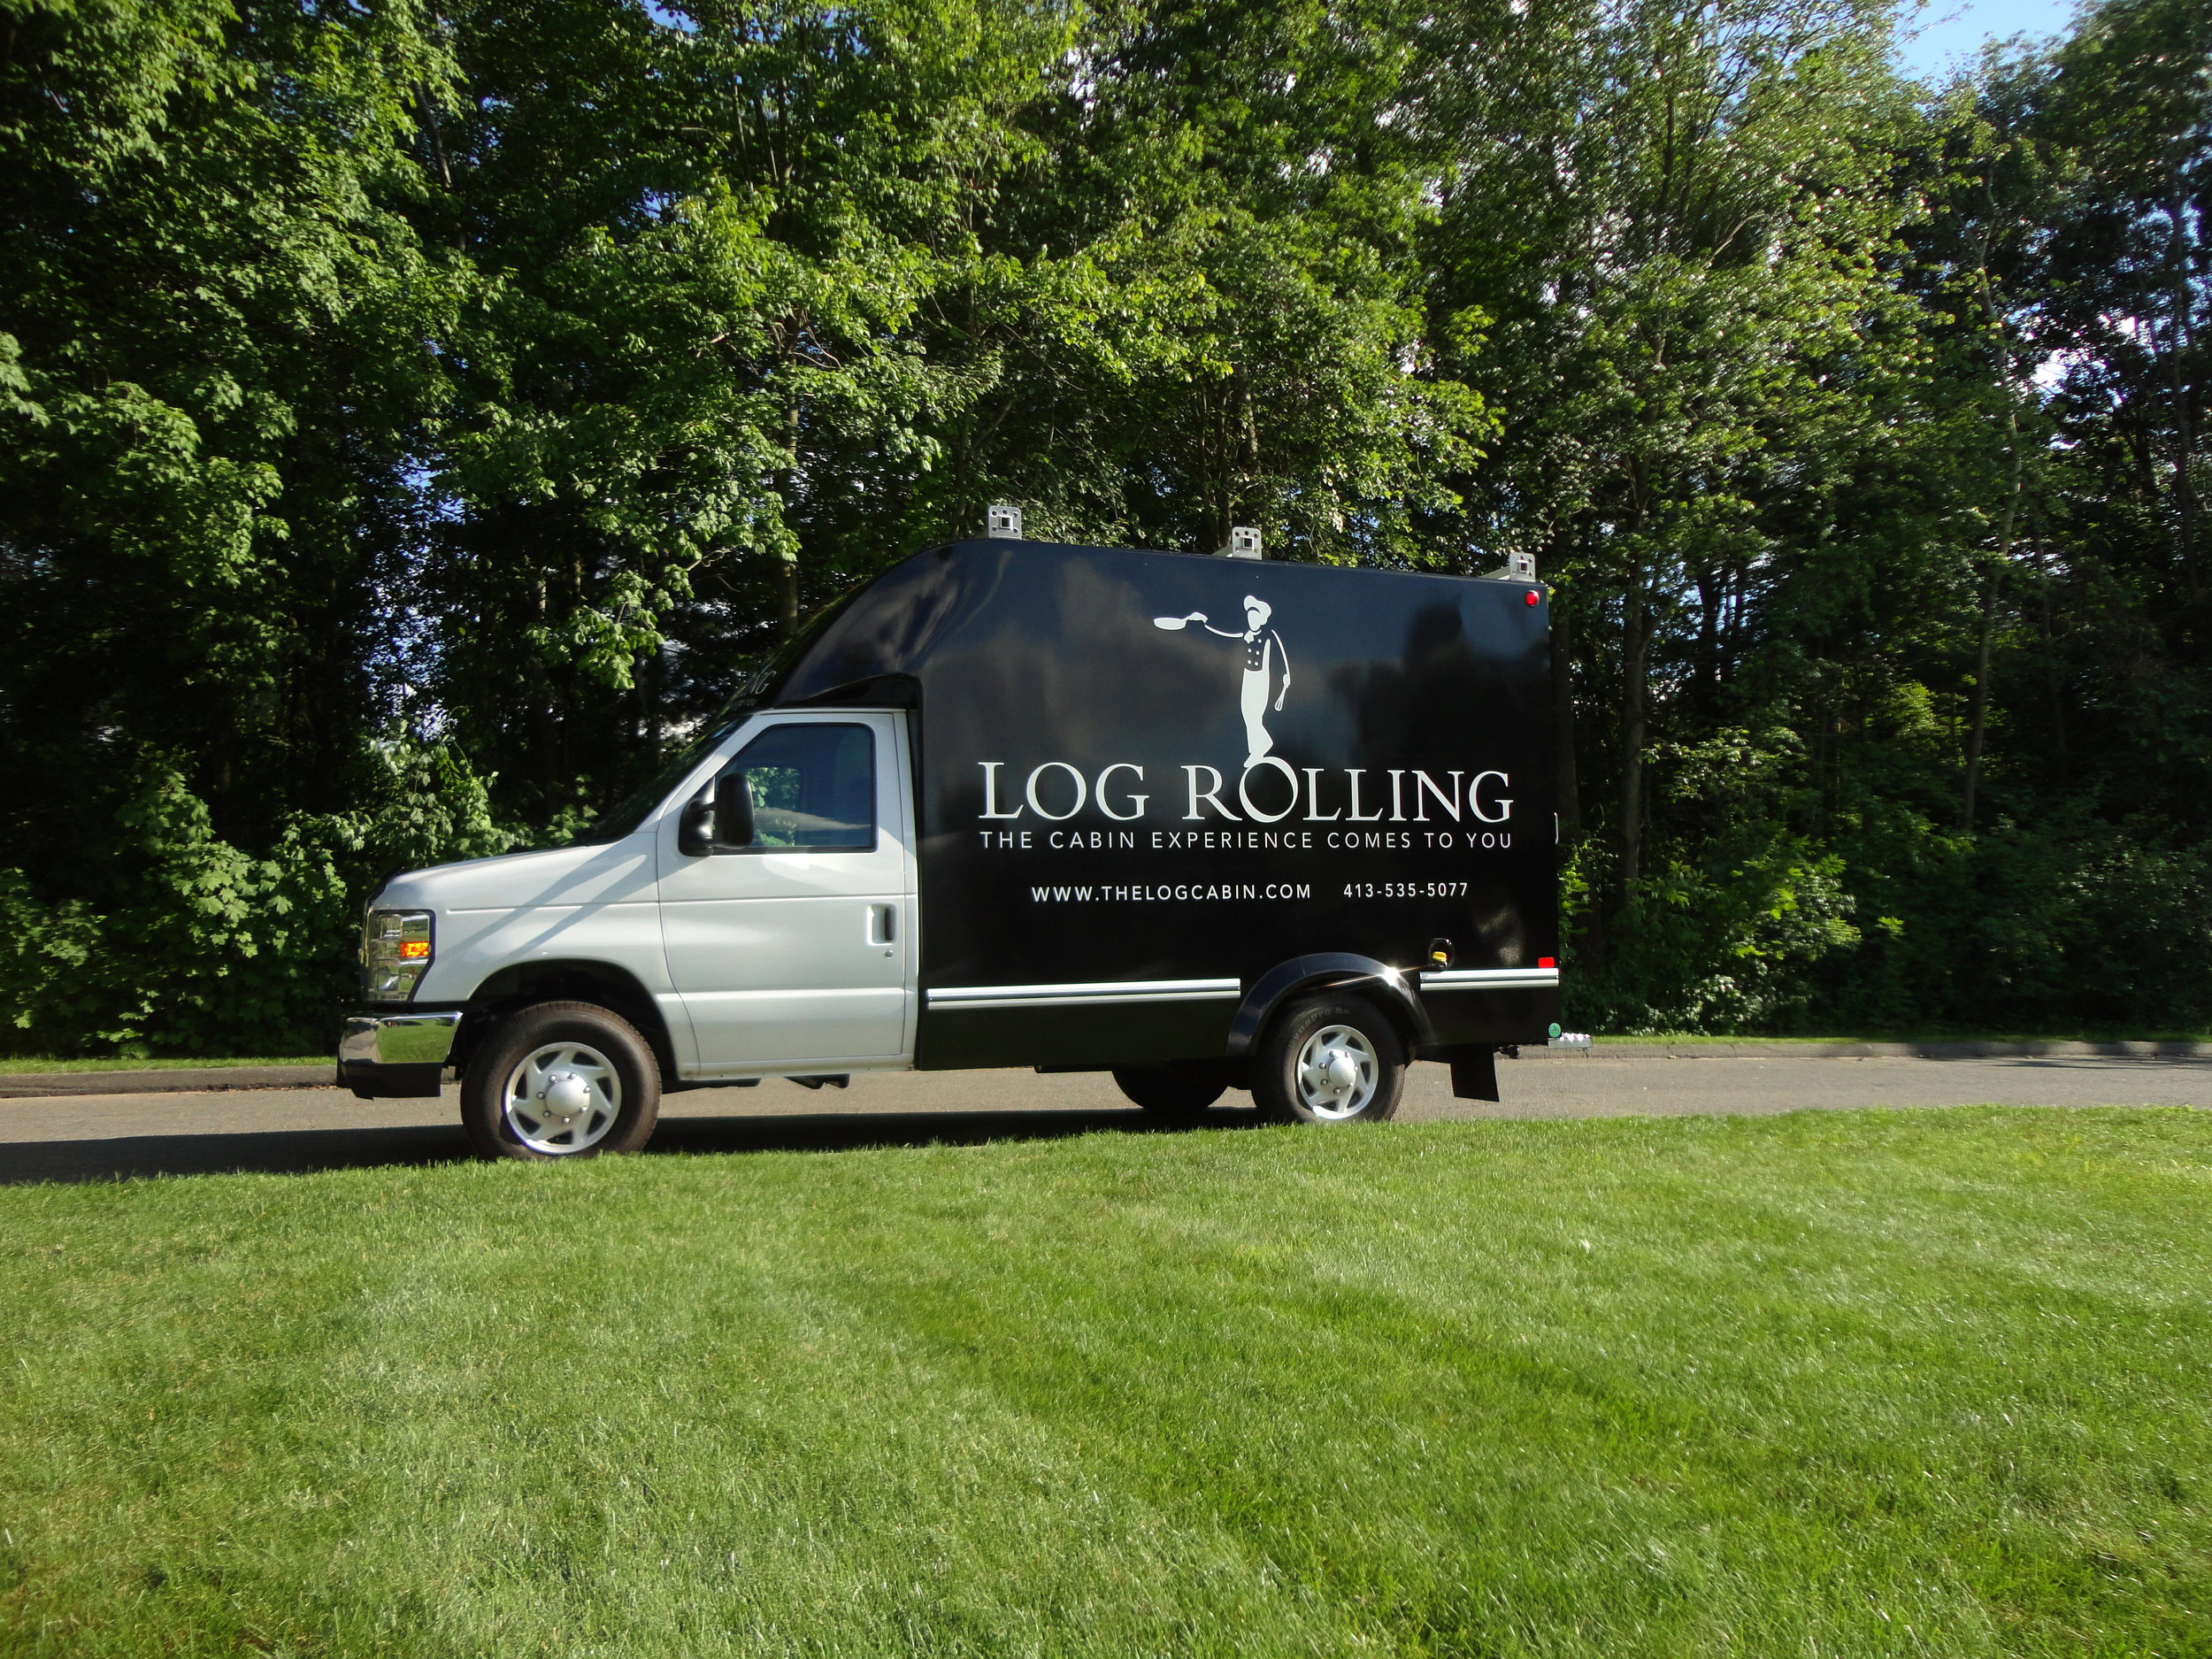 Delaney Log Cabin - Log Rolling Box Truck 7.11.14 (4).jpg